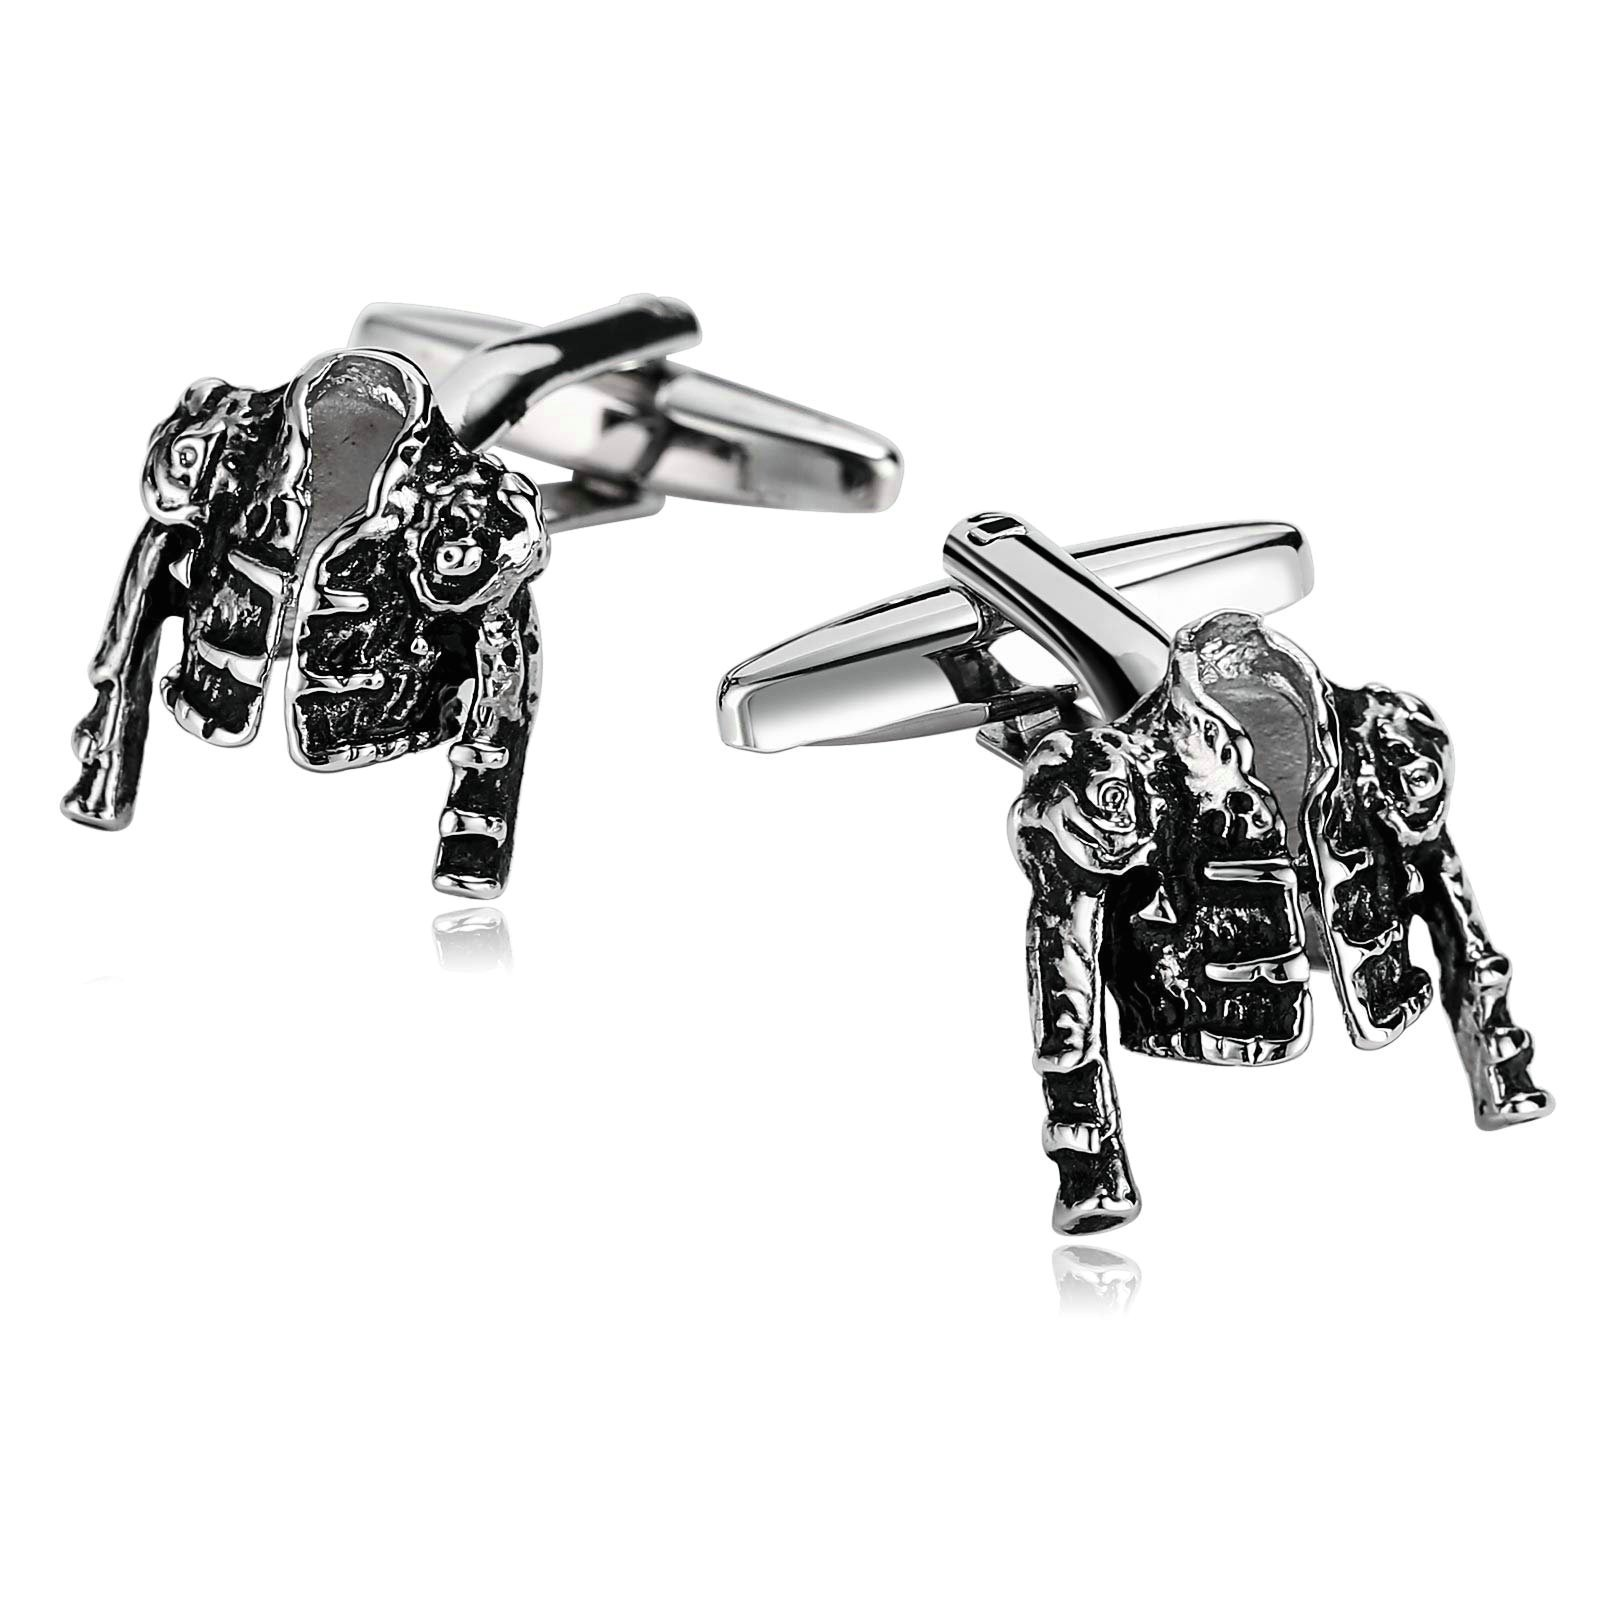 Aooaz Cufflinks for Men Stainless Steel Clothes Jacket Vest Silver Black Accessories 1.5X1.5CM